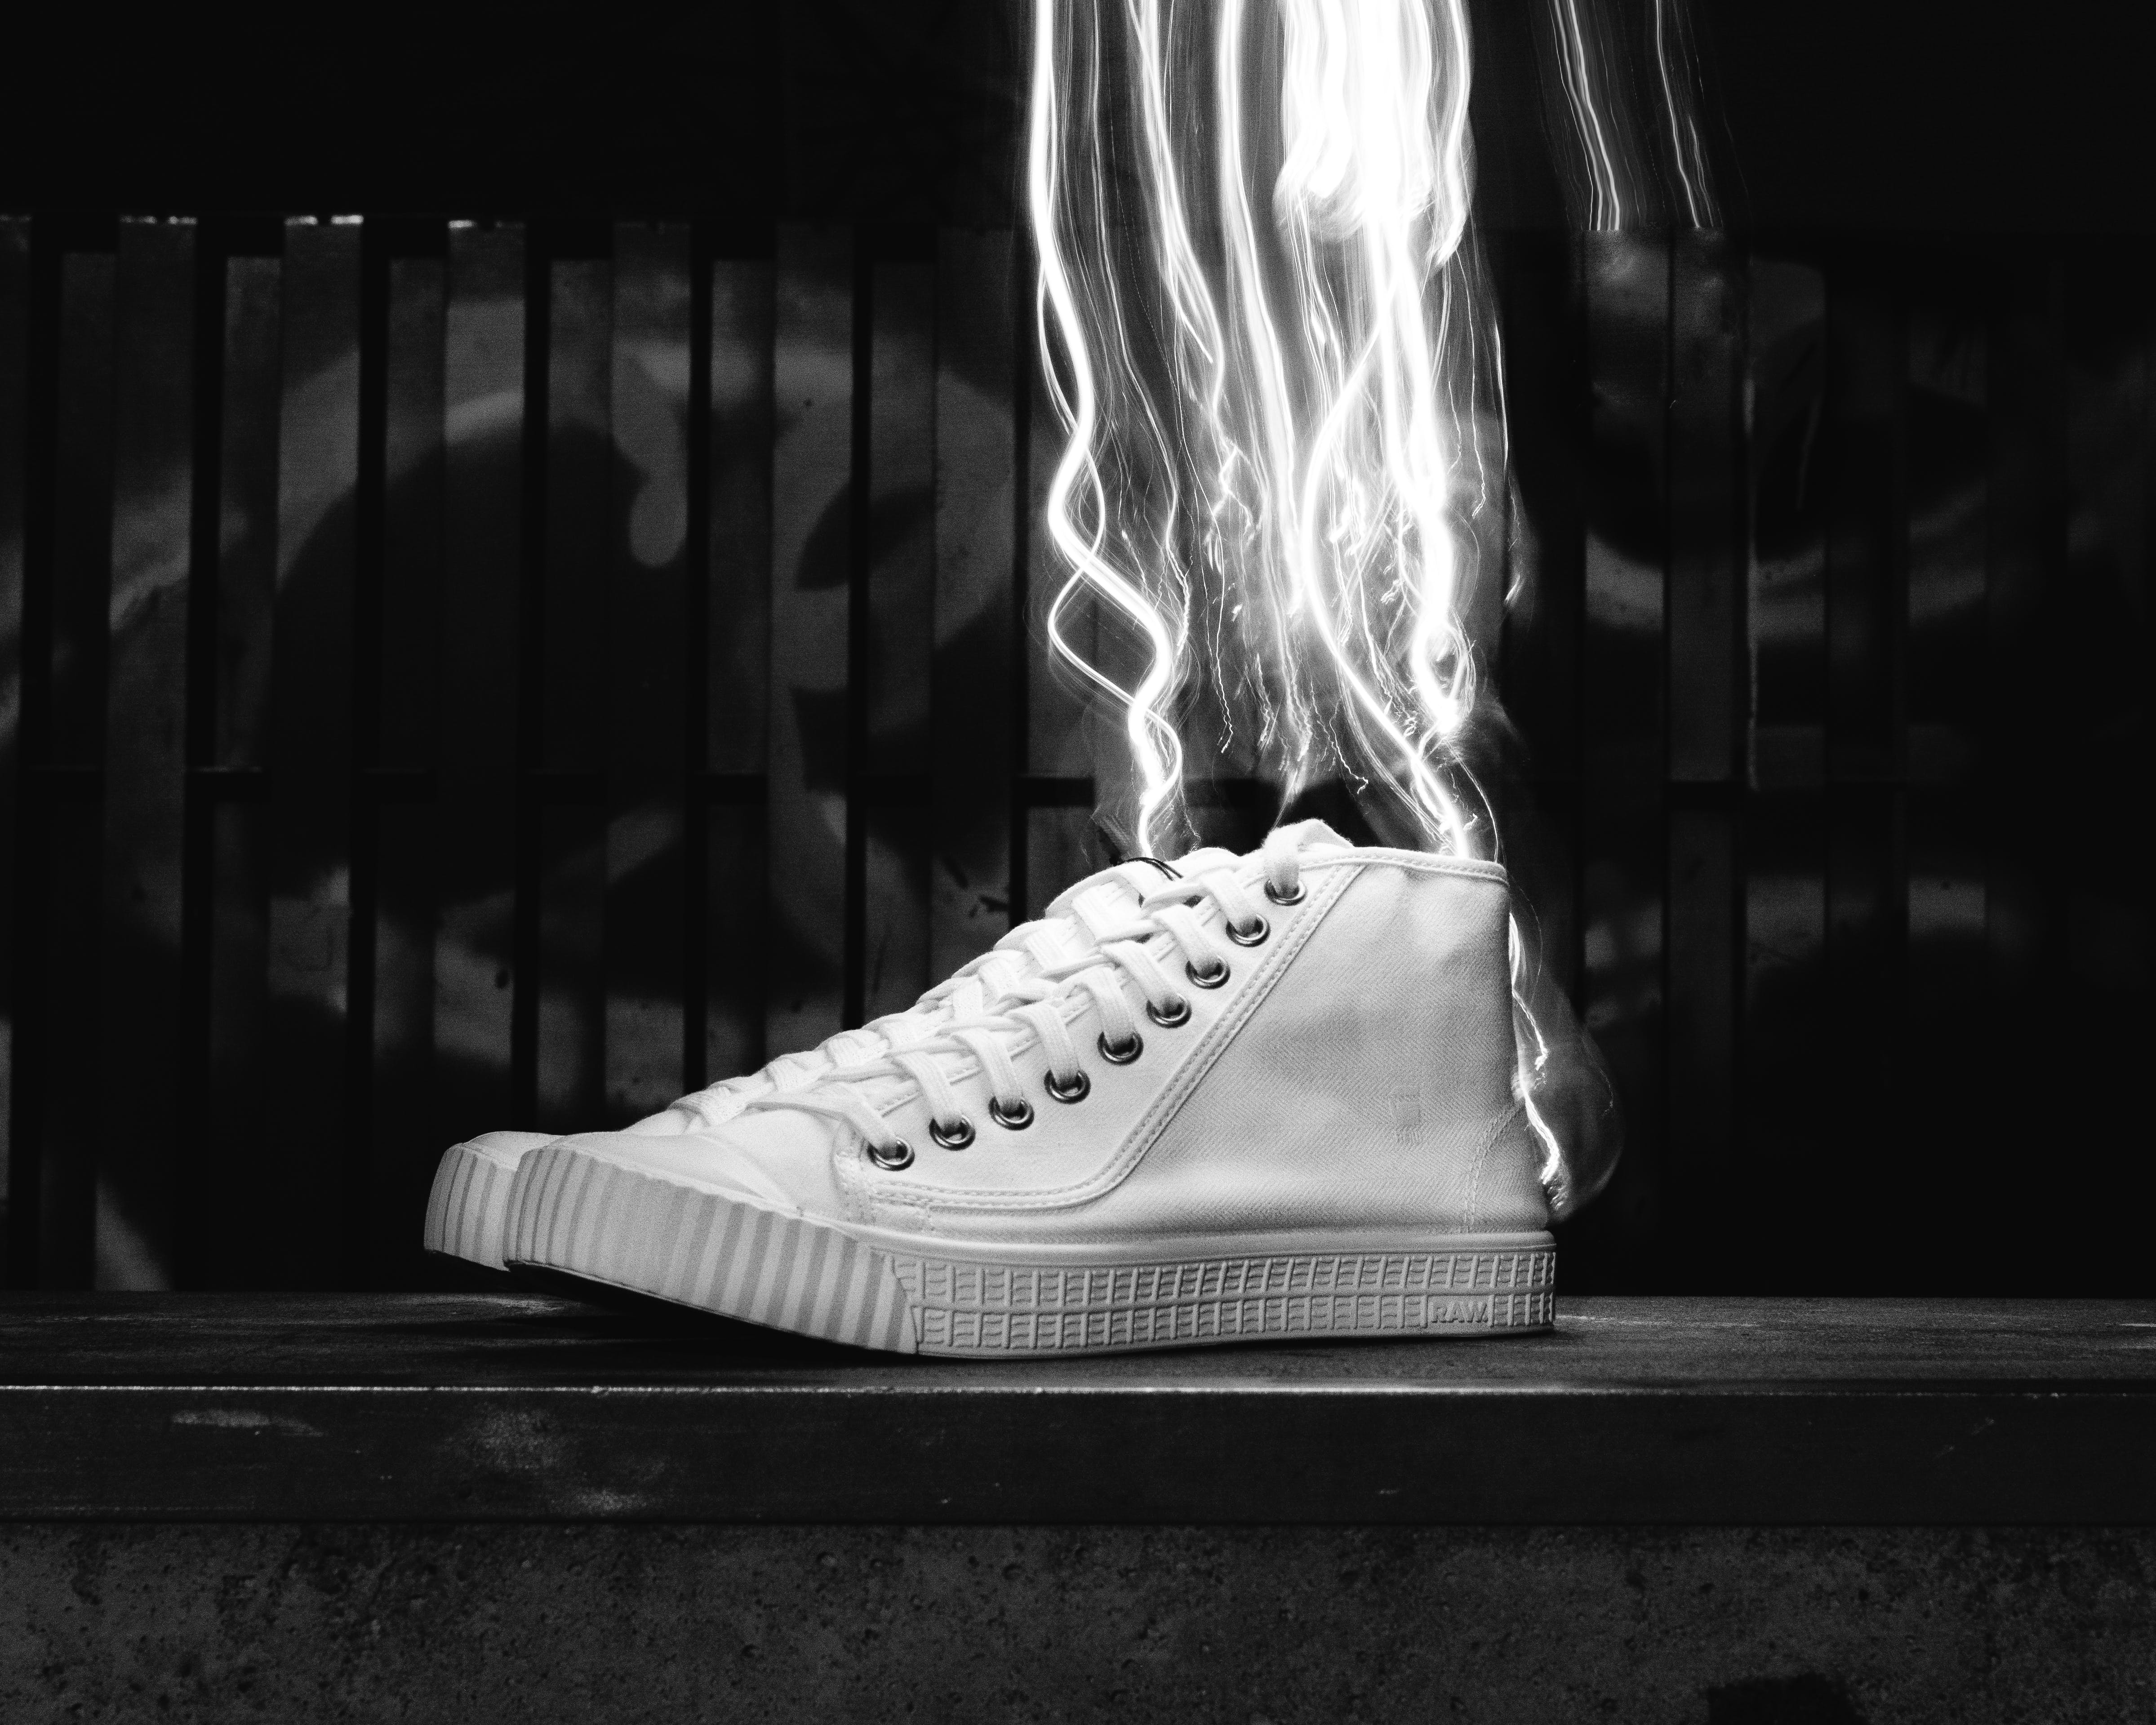 Grayscale Photography Of High-top Sneakers